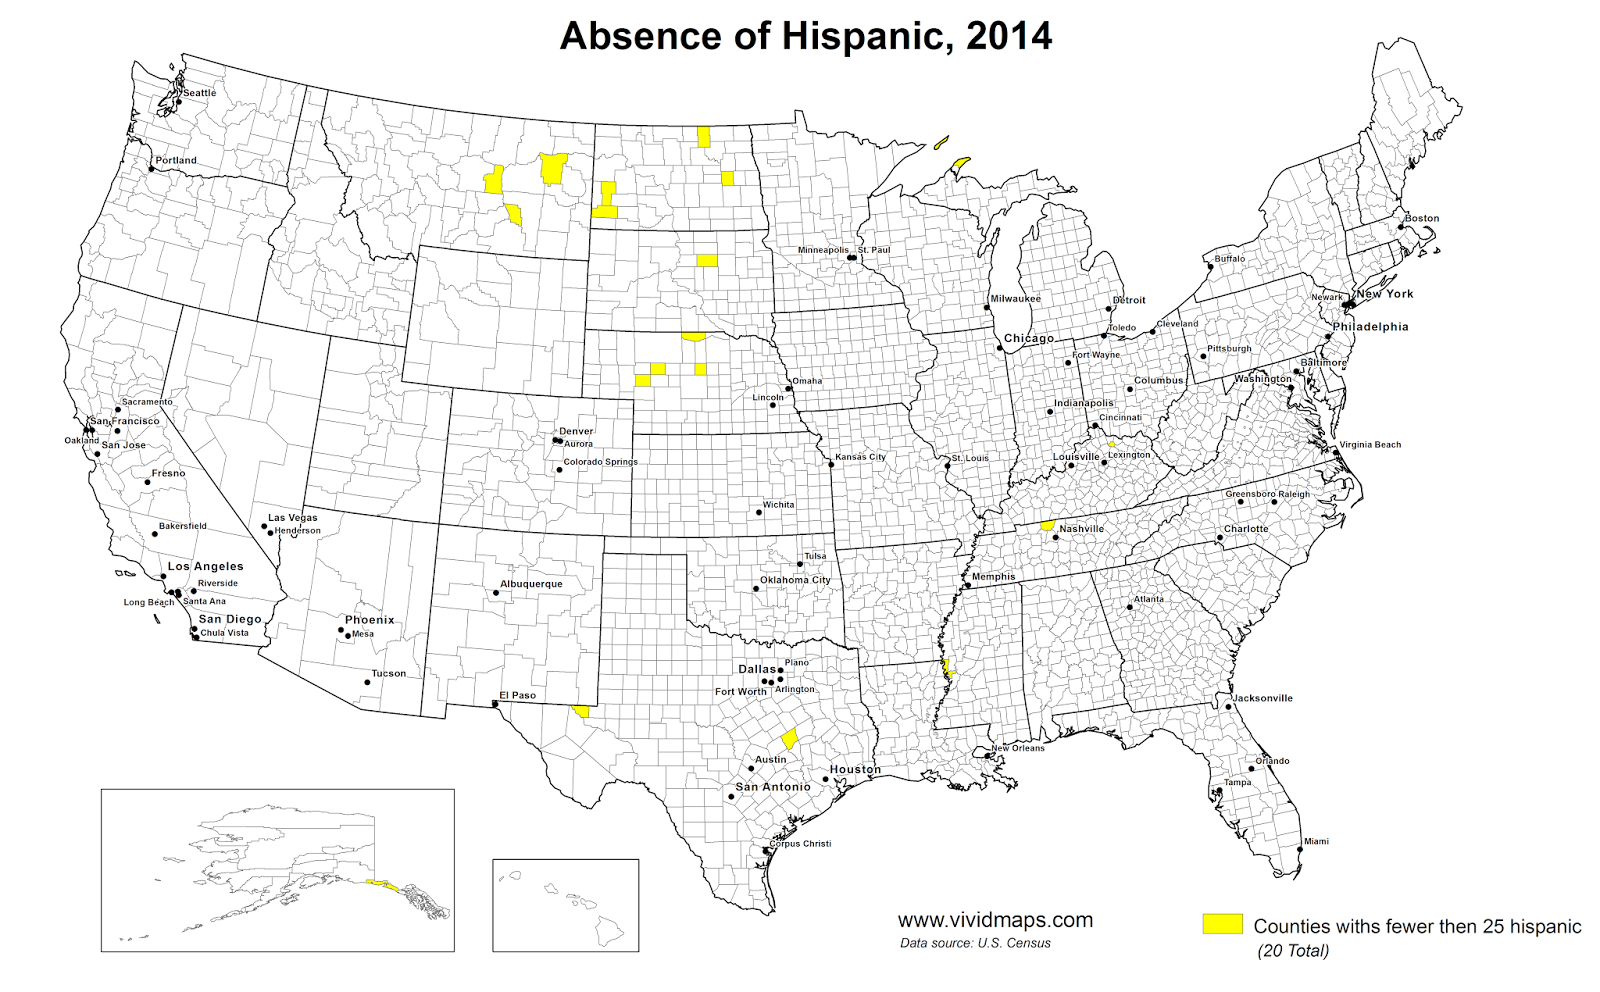 Counties with fewer than 25 hispanic Americans, 2014